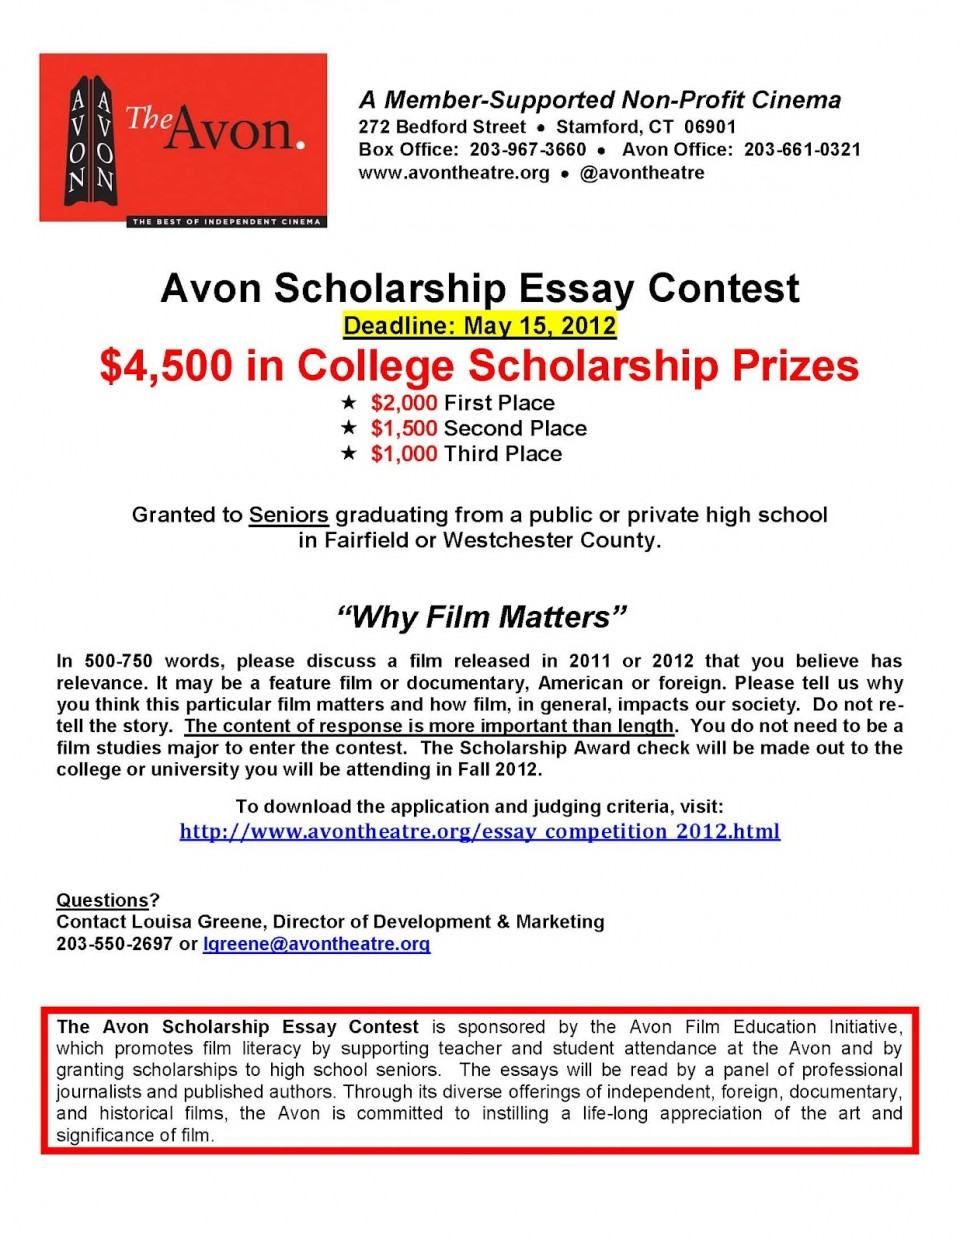 016 Avonscholarshipessaycontest2012flyer Essay Example Shocking Scholarships For High School Sophomores No 2018 960